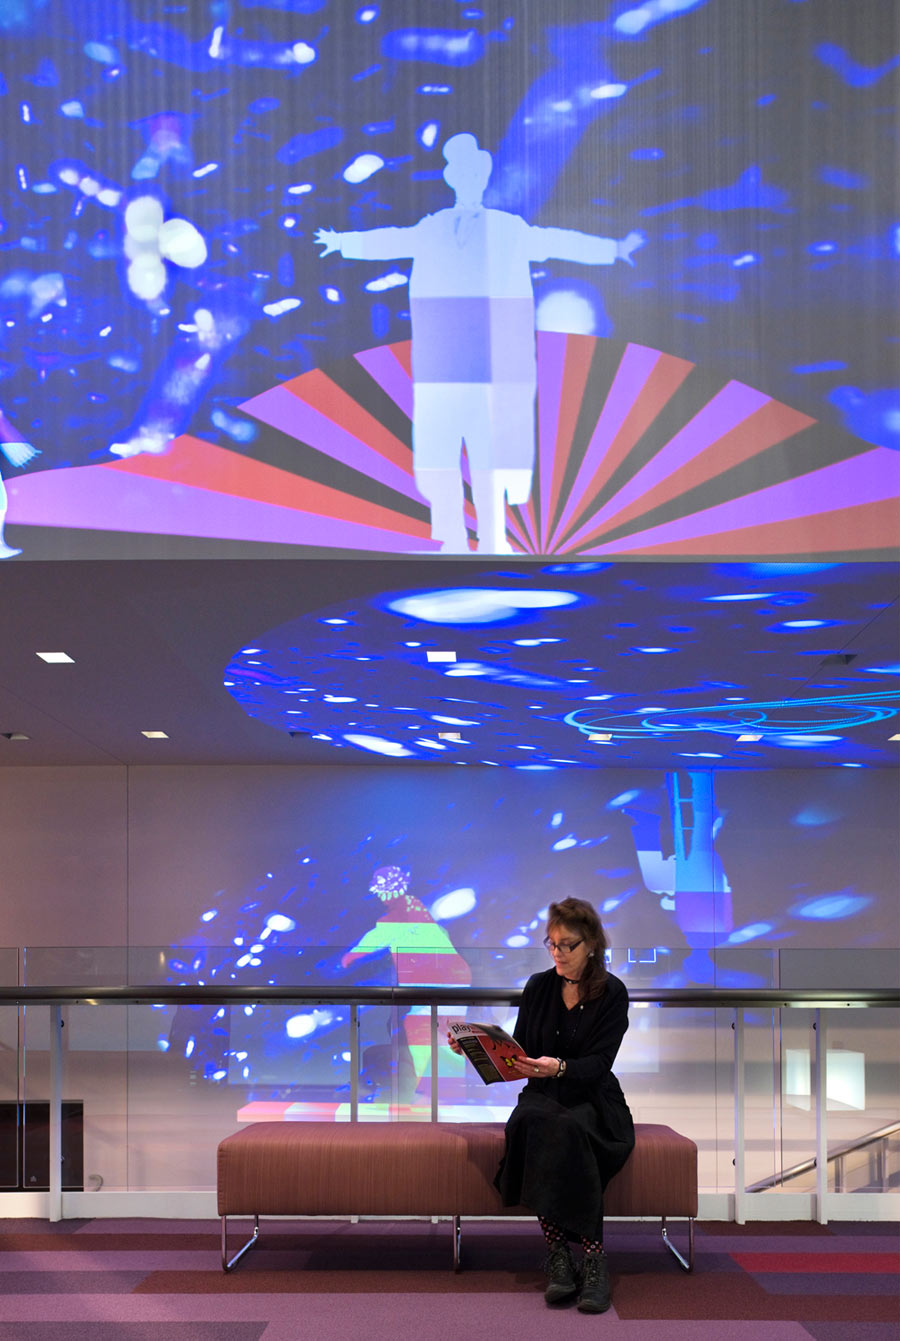 <p>Video art projection on the walls activates the lobby. <br><small>© Peter Aaron/OTTO</small></p>